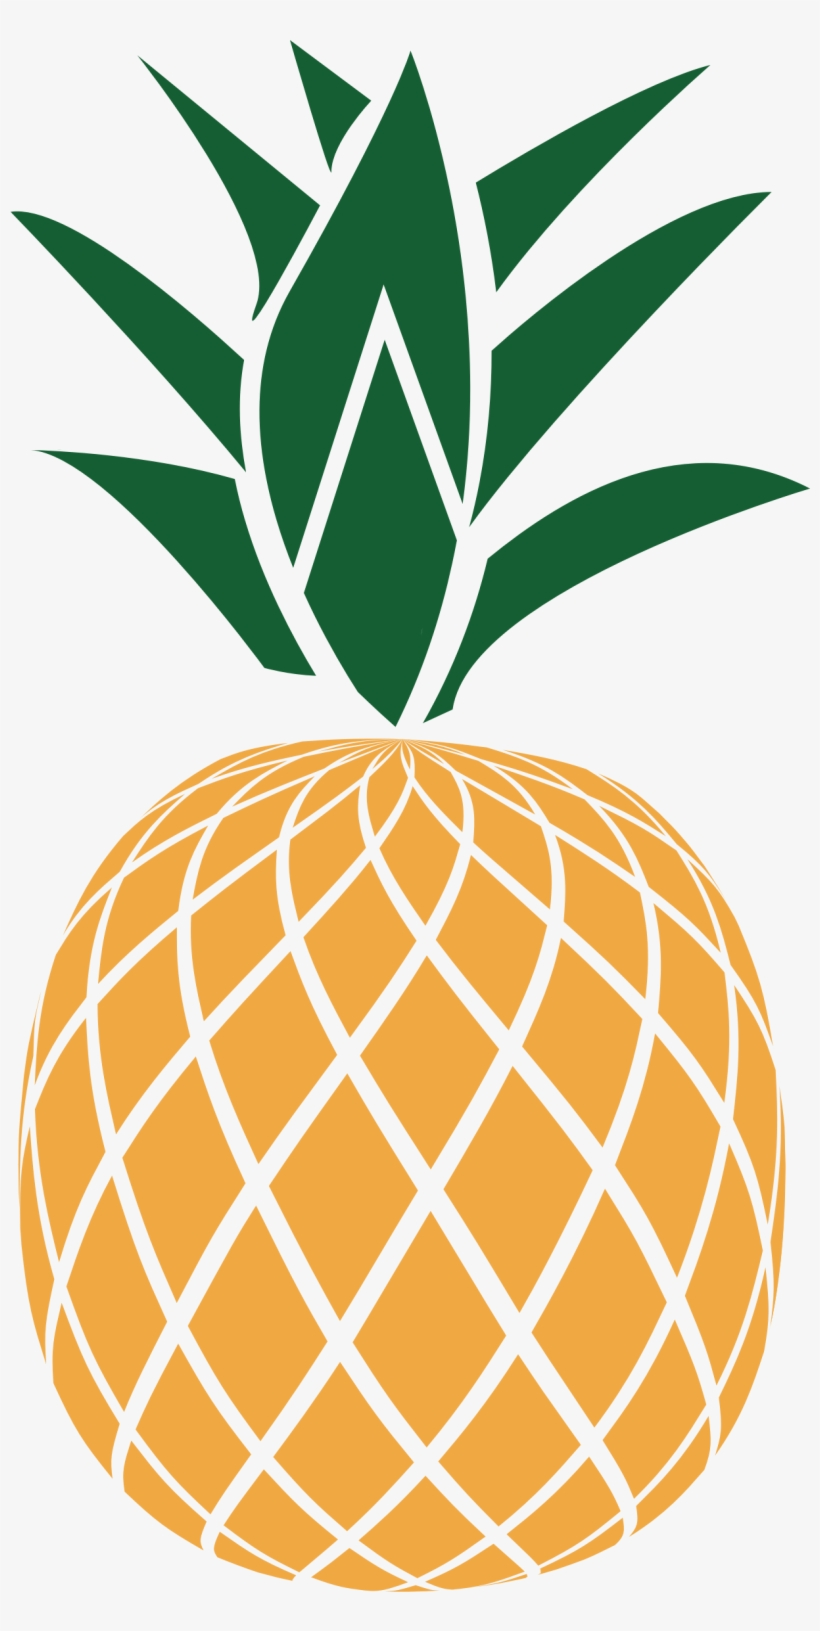 Free Download Pineapple Vector Clipart Pineapple Clip.